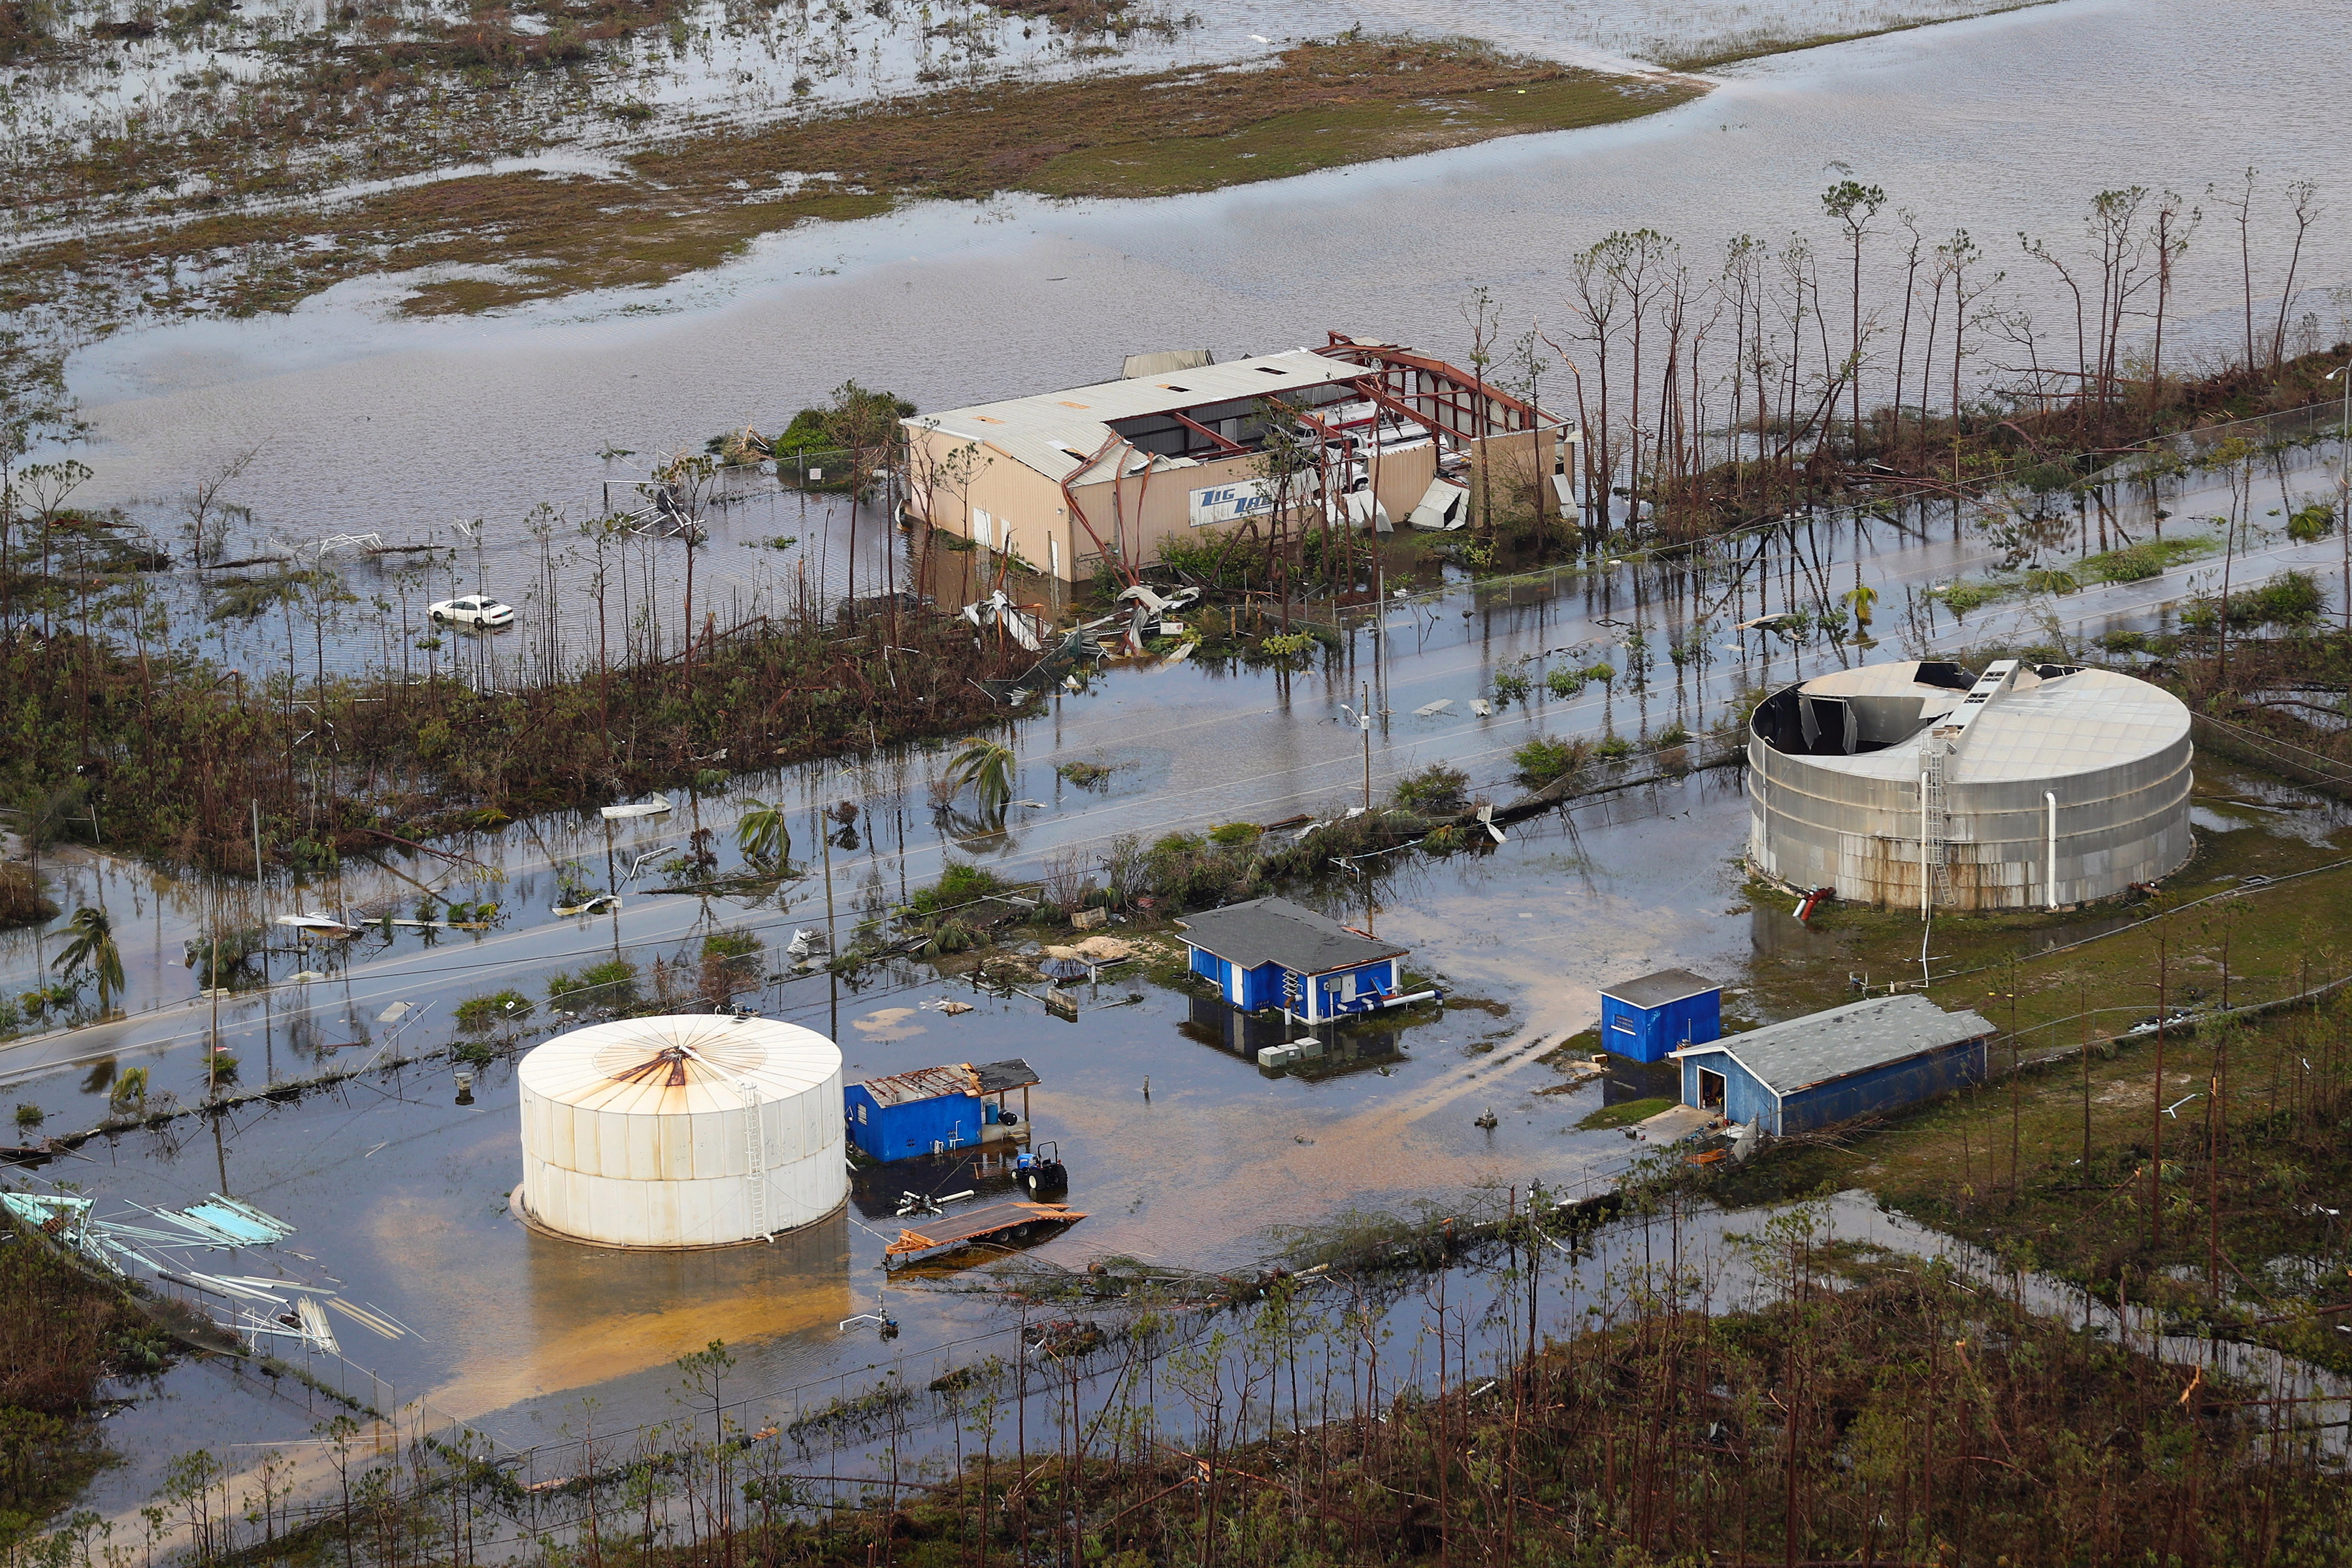 Huge areas are still flooded after the deadly storm ravaged the Bahamas